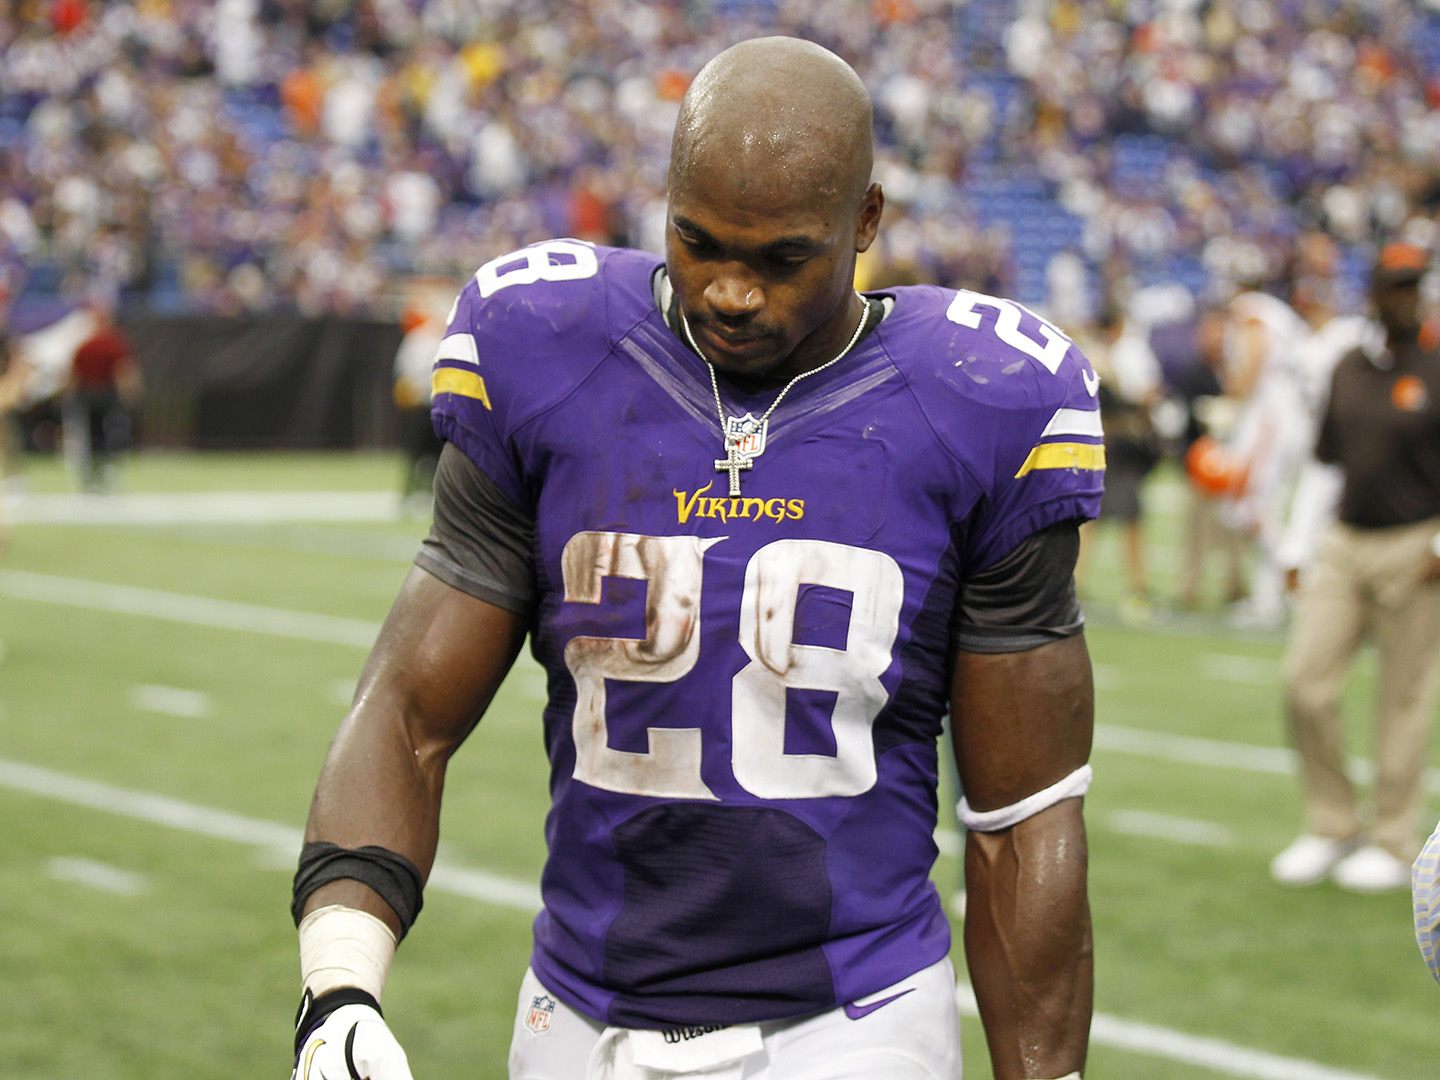 Vikings deactivate Adrian Peterson indefinitely